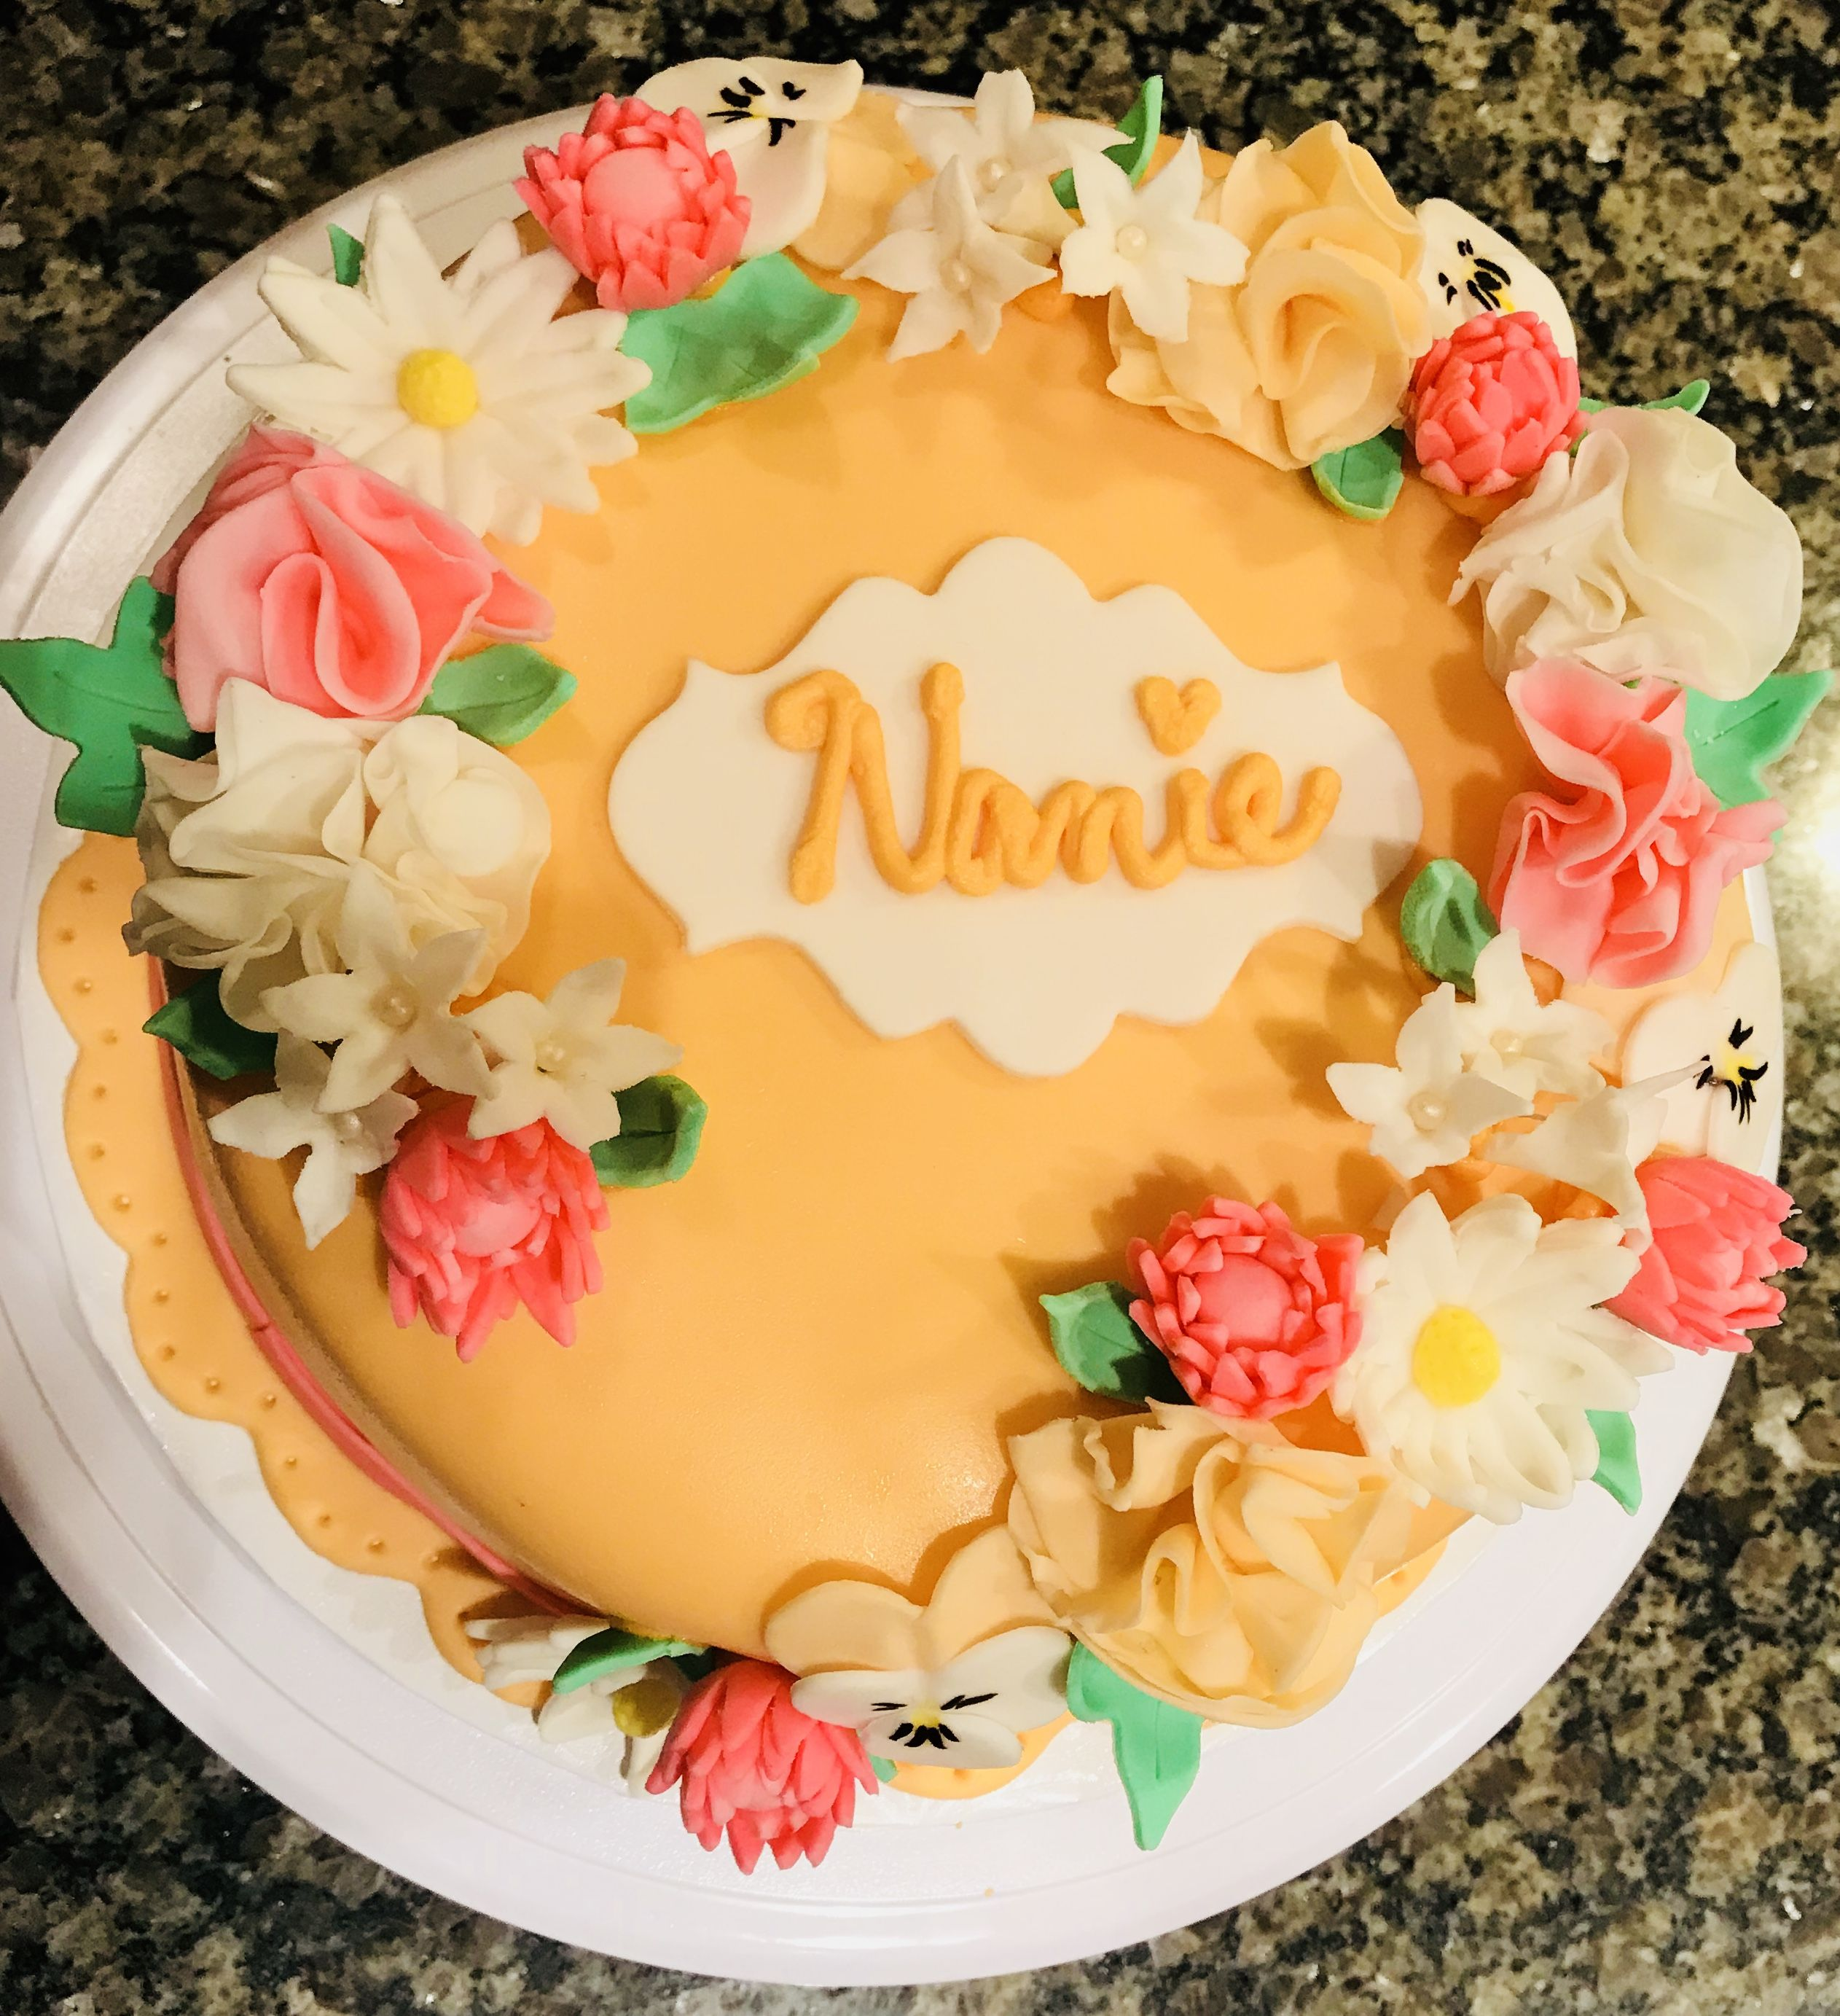 Outstanding Garden Flower Birthday Cake For Nanie Daisies Peonies Funny Birthday Cards Online Alyptdamsfinfo